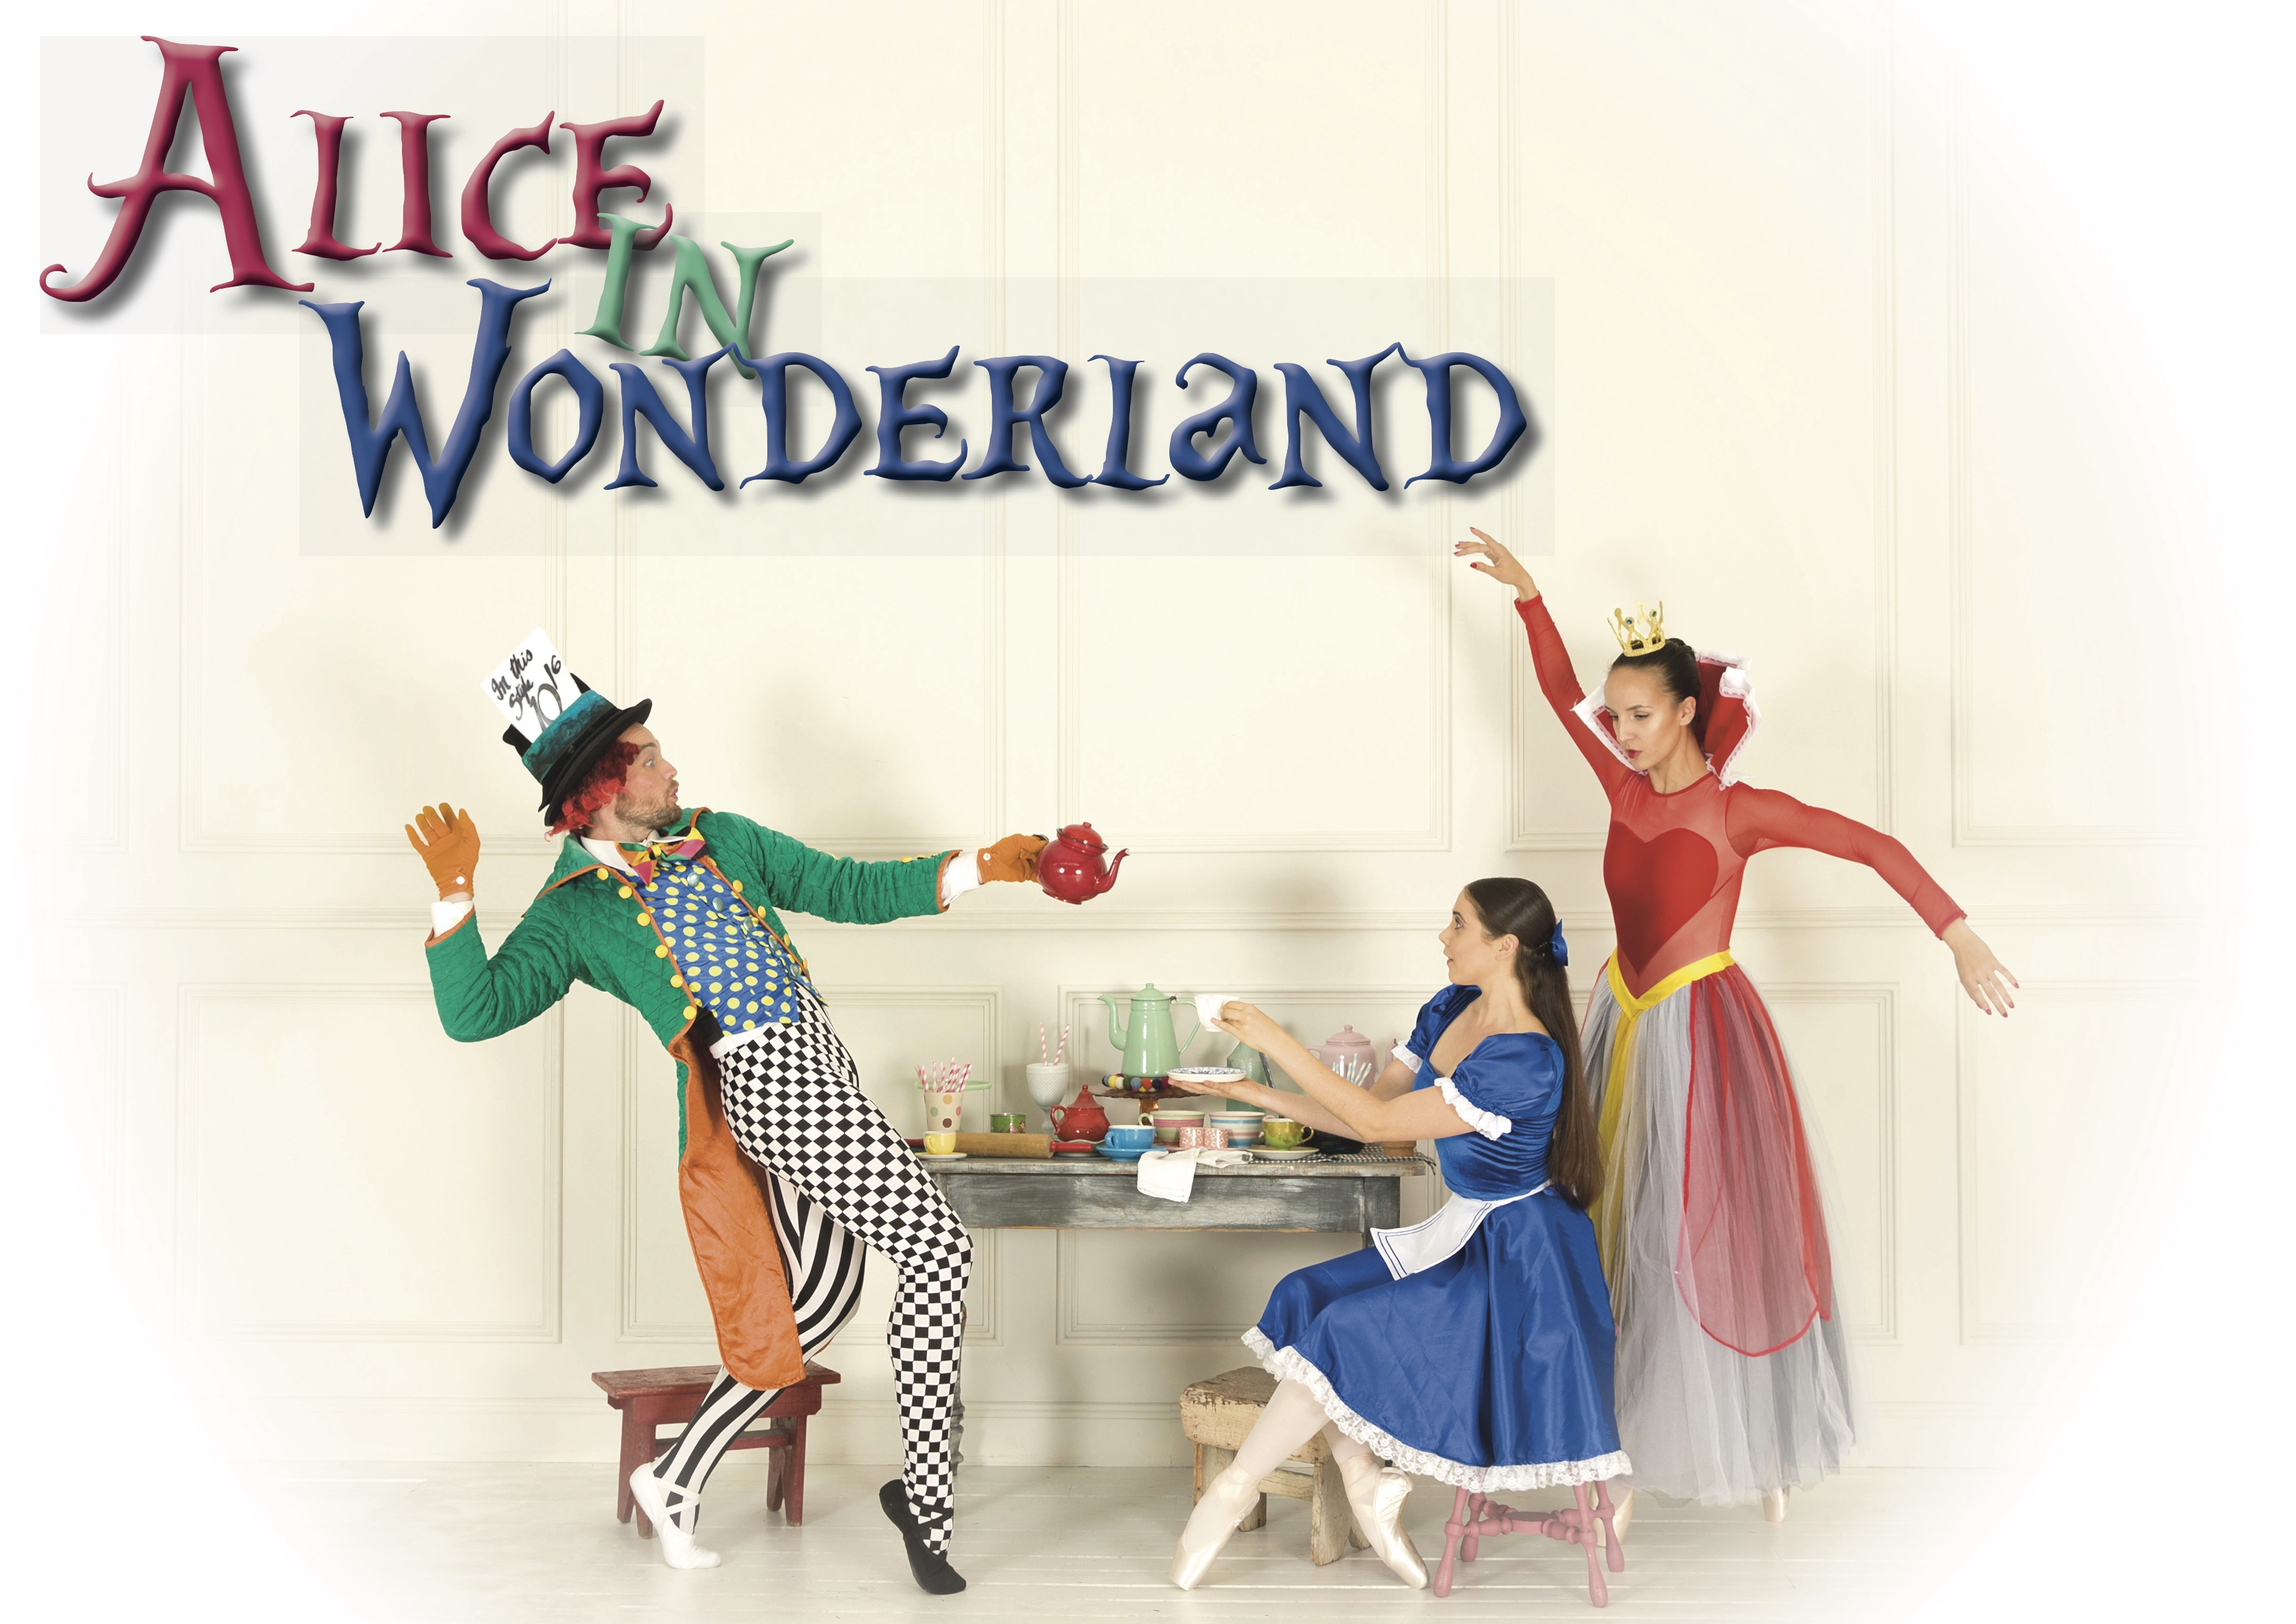 Alice In Wonderland presented by Melbourne City Ballet at Byron Theatre